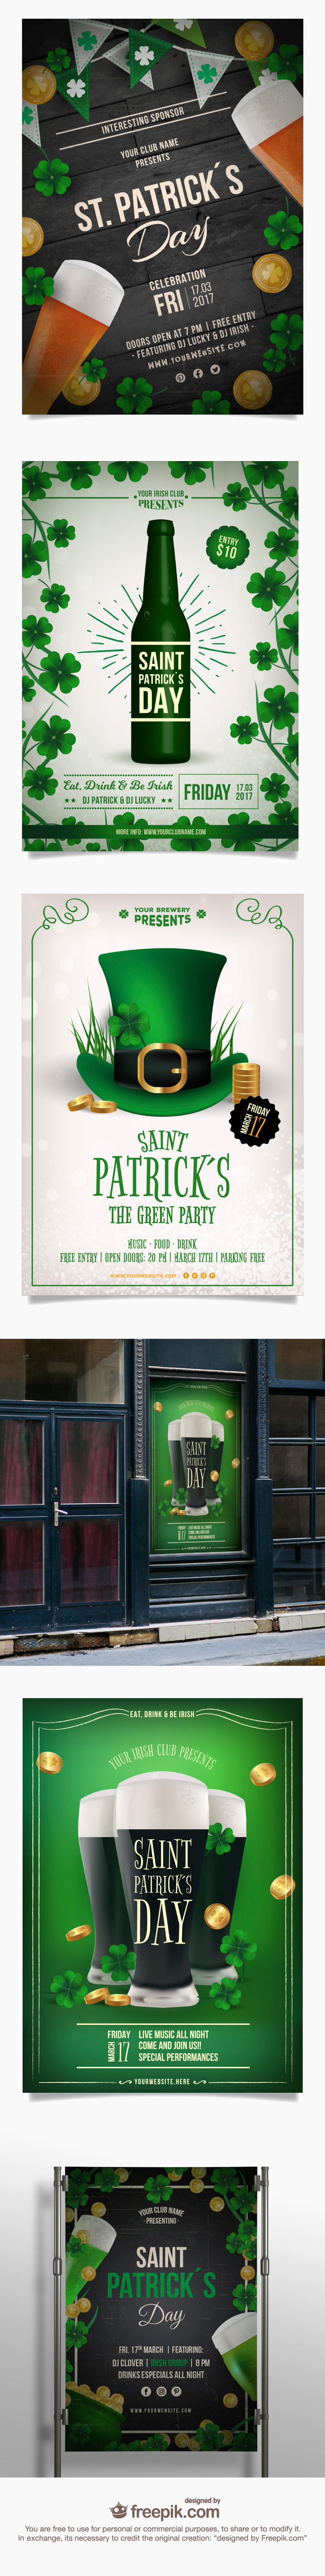 cover_saint_patricks_day-01